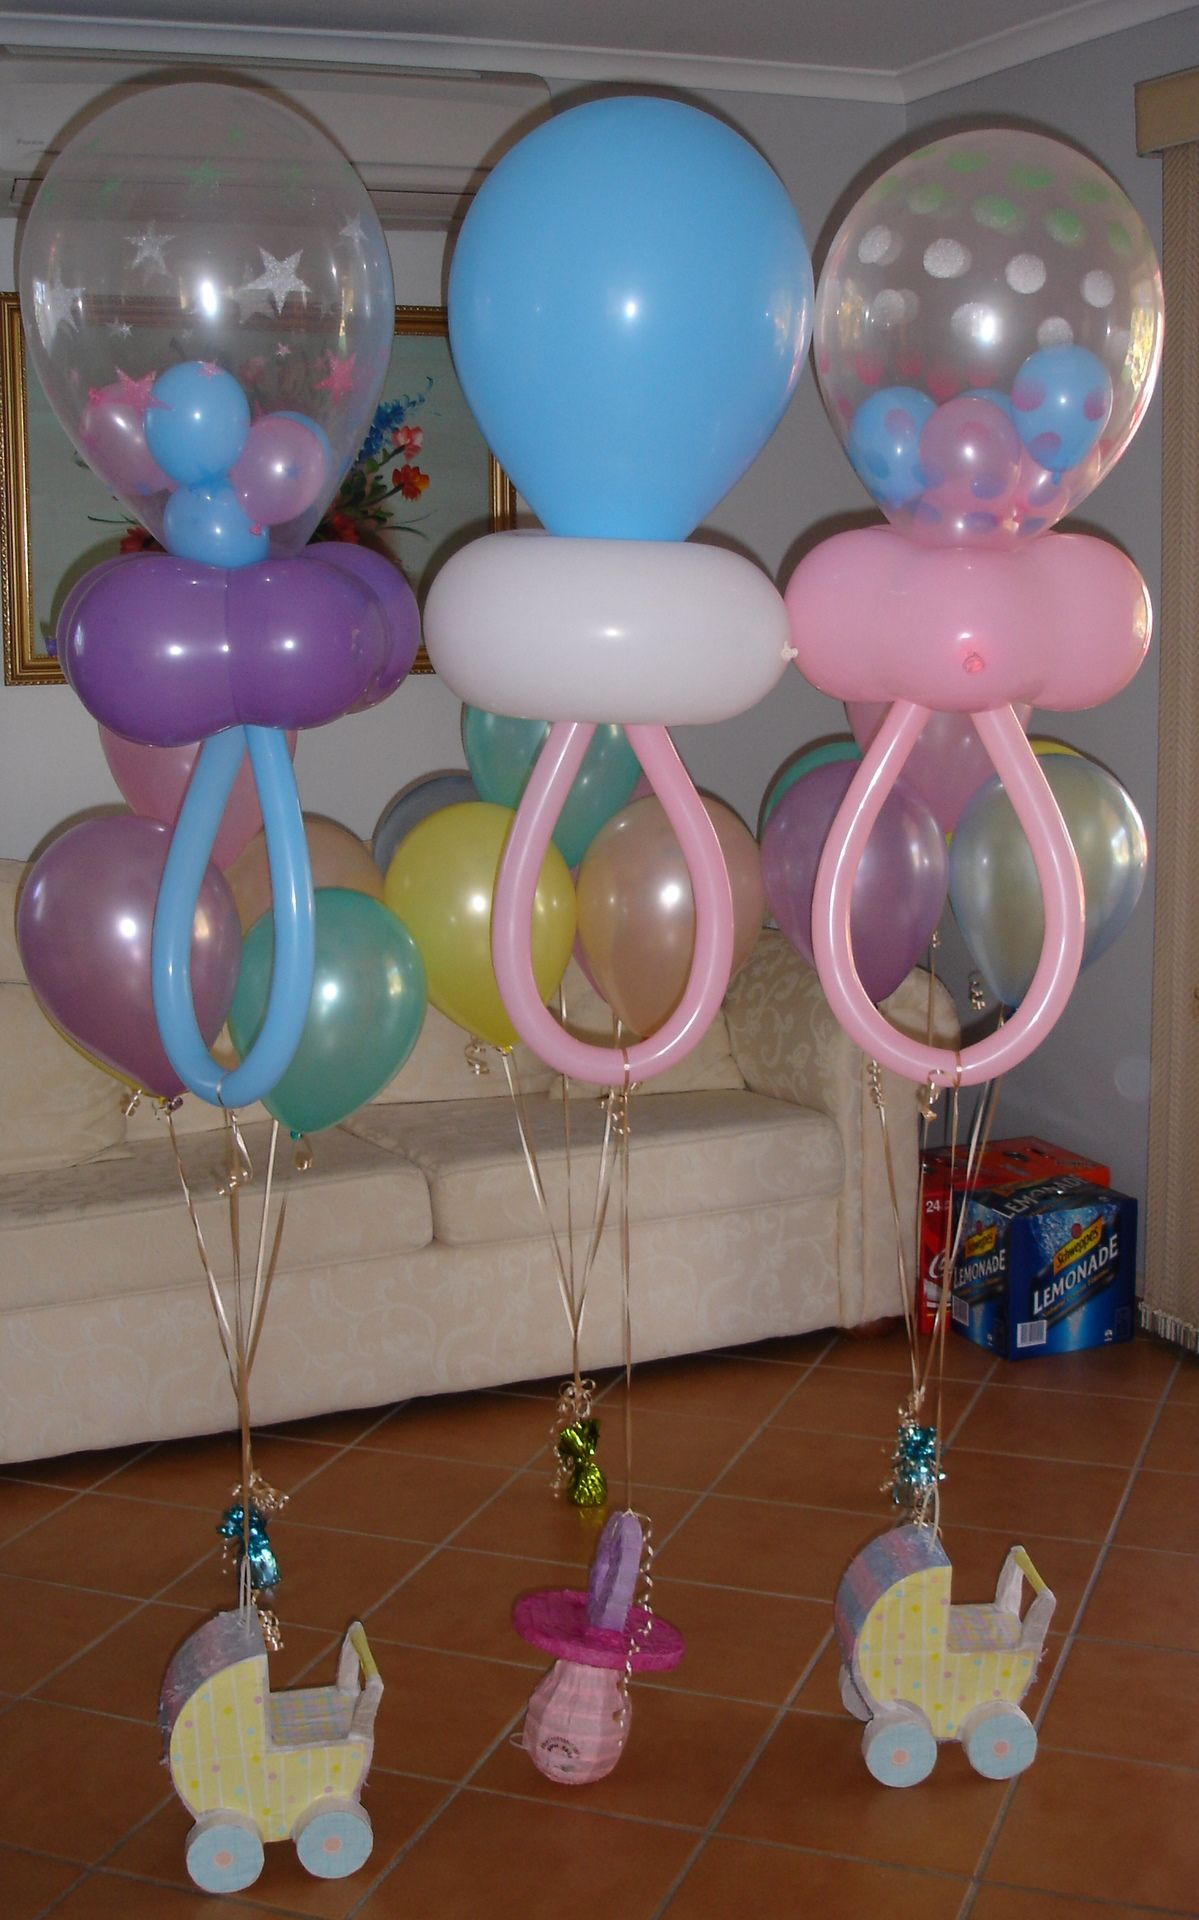 Baby shower decorations made from balloons in a shape of a pacifier. I like  how some have smaller balloons inside.